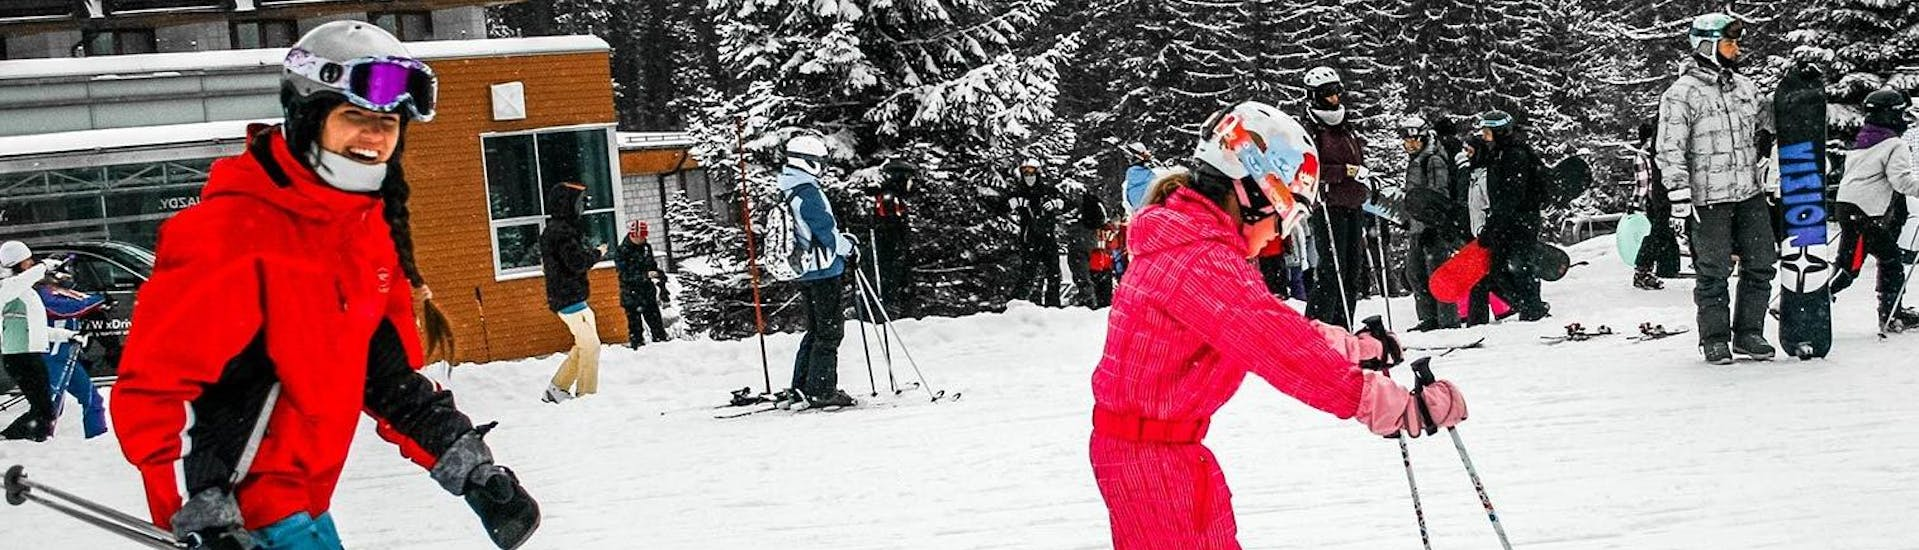 """During the Private Ski Lessons for Kids """"All-in-One"""" - All Levels, a child is learning the basics of skiing under the supervision of an experienced ski instructor from the ski school Crystal Ski."""